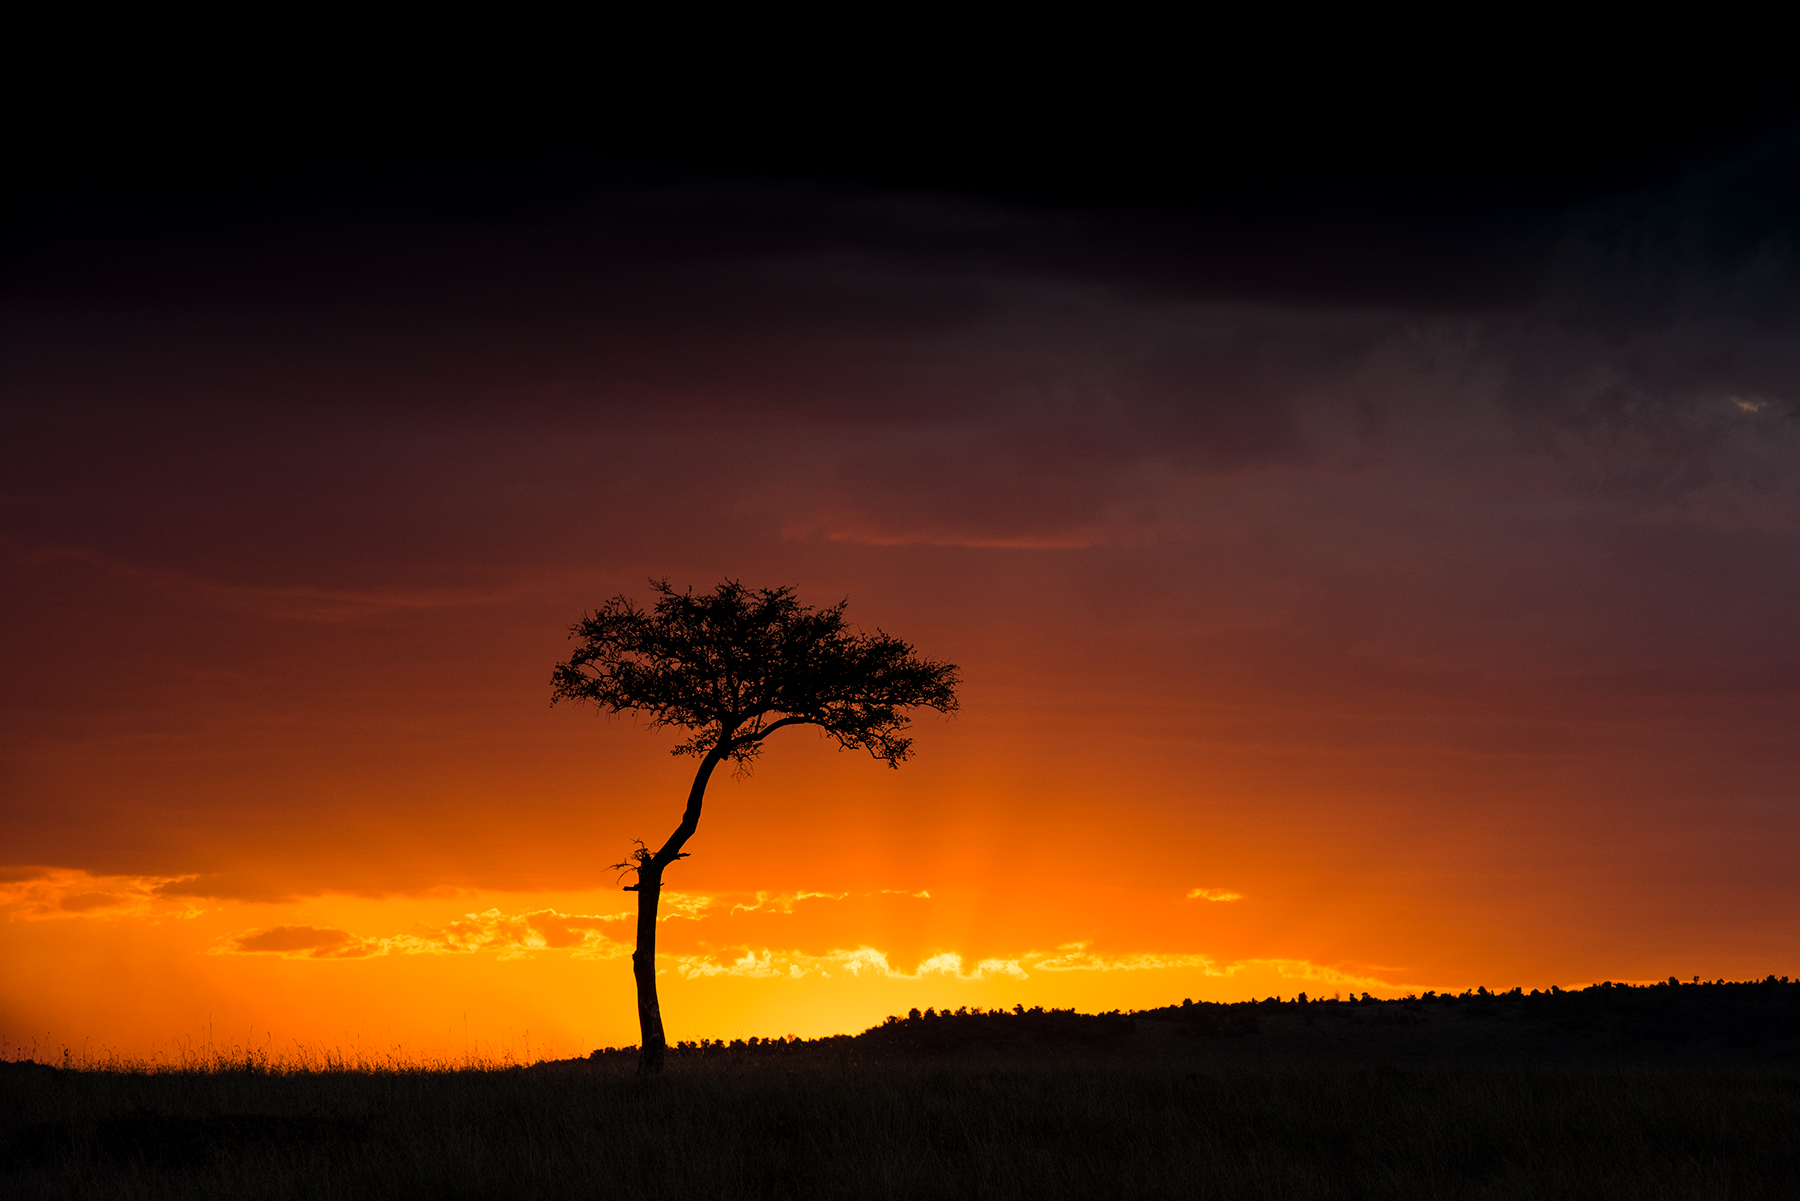 Sunsets in Africa flirt with the line that separates spectacular from unreal.